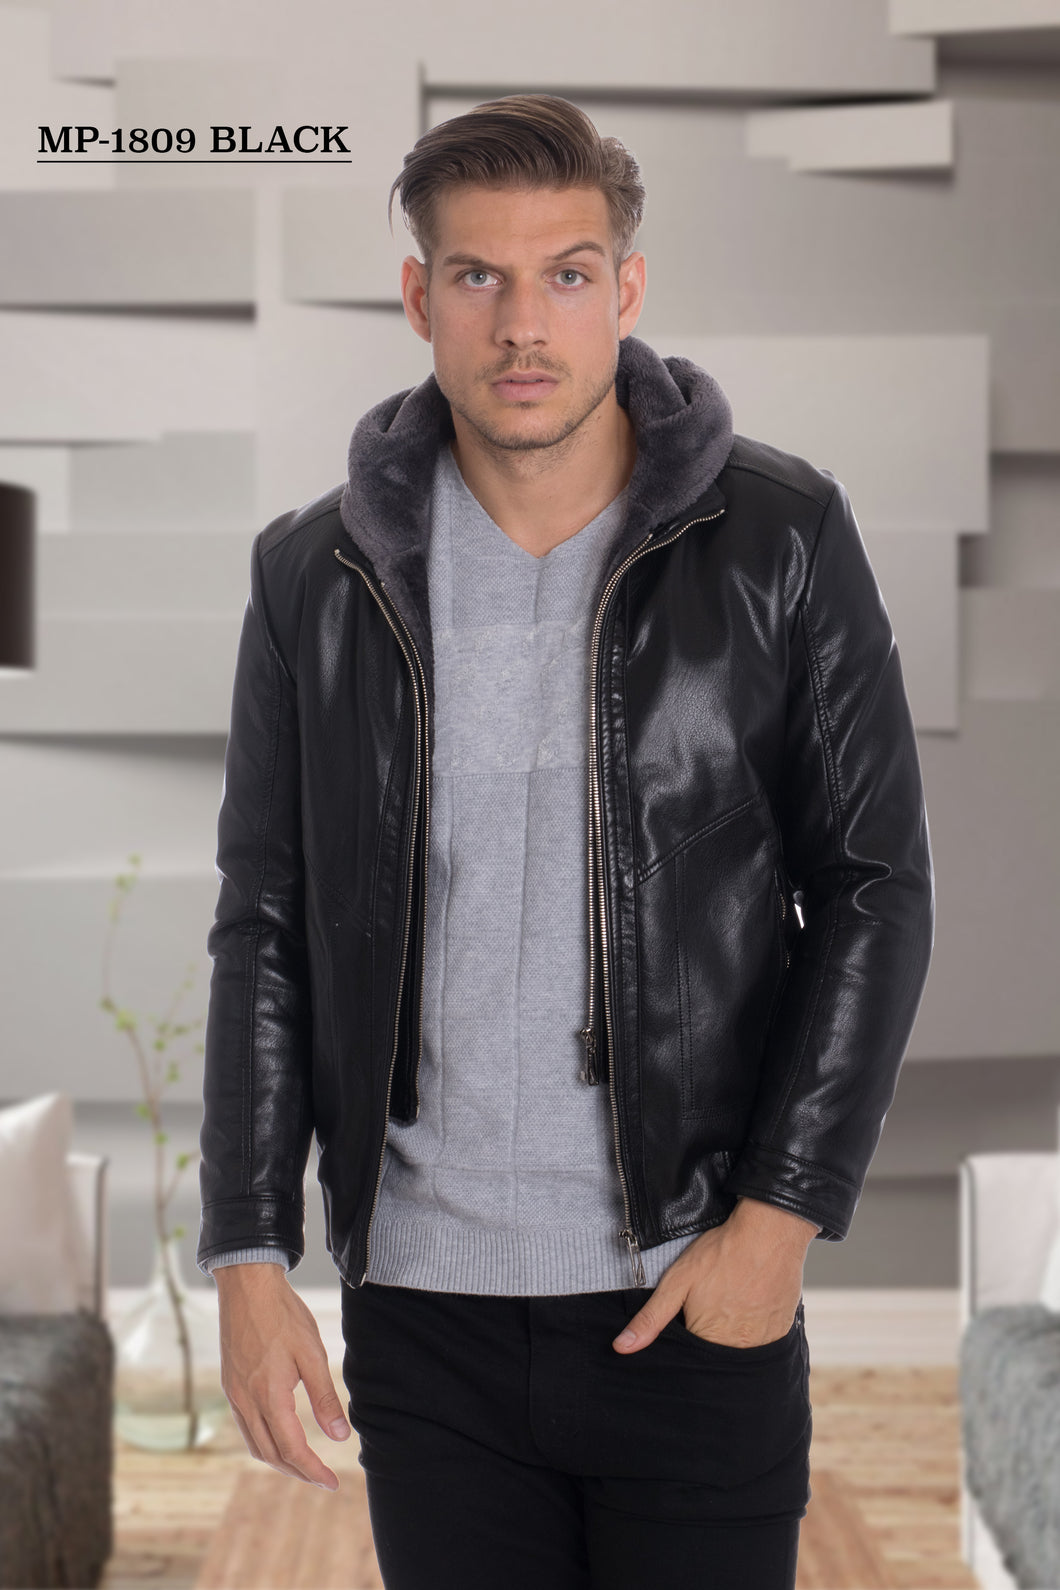 De-Niko Black Double Zip Up Faux Leather Fashion Jacket With Hoodie STYLE: MP-1809